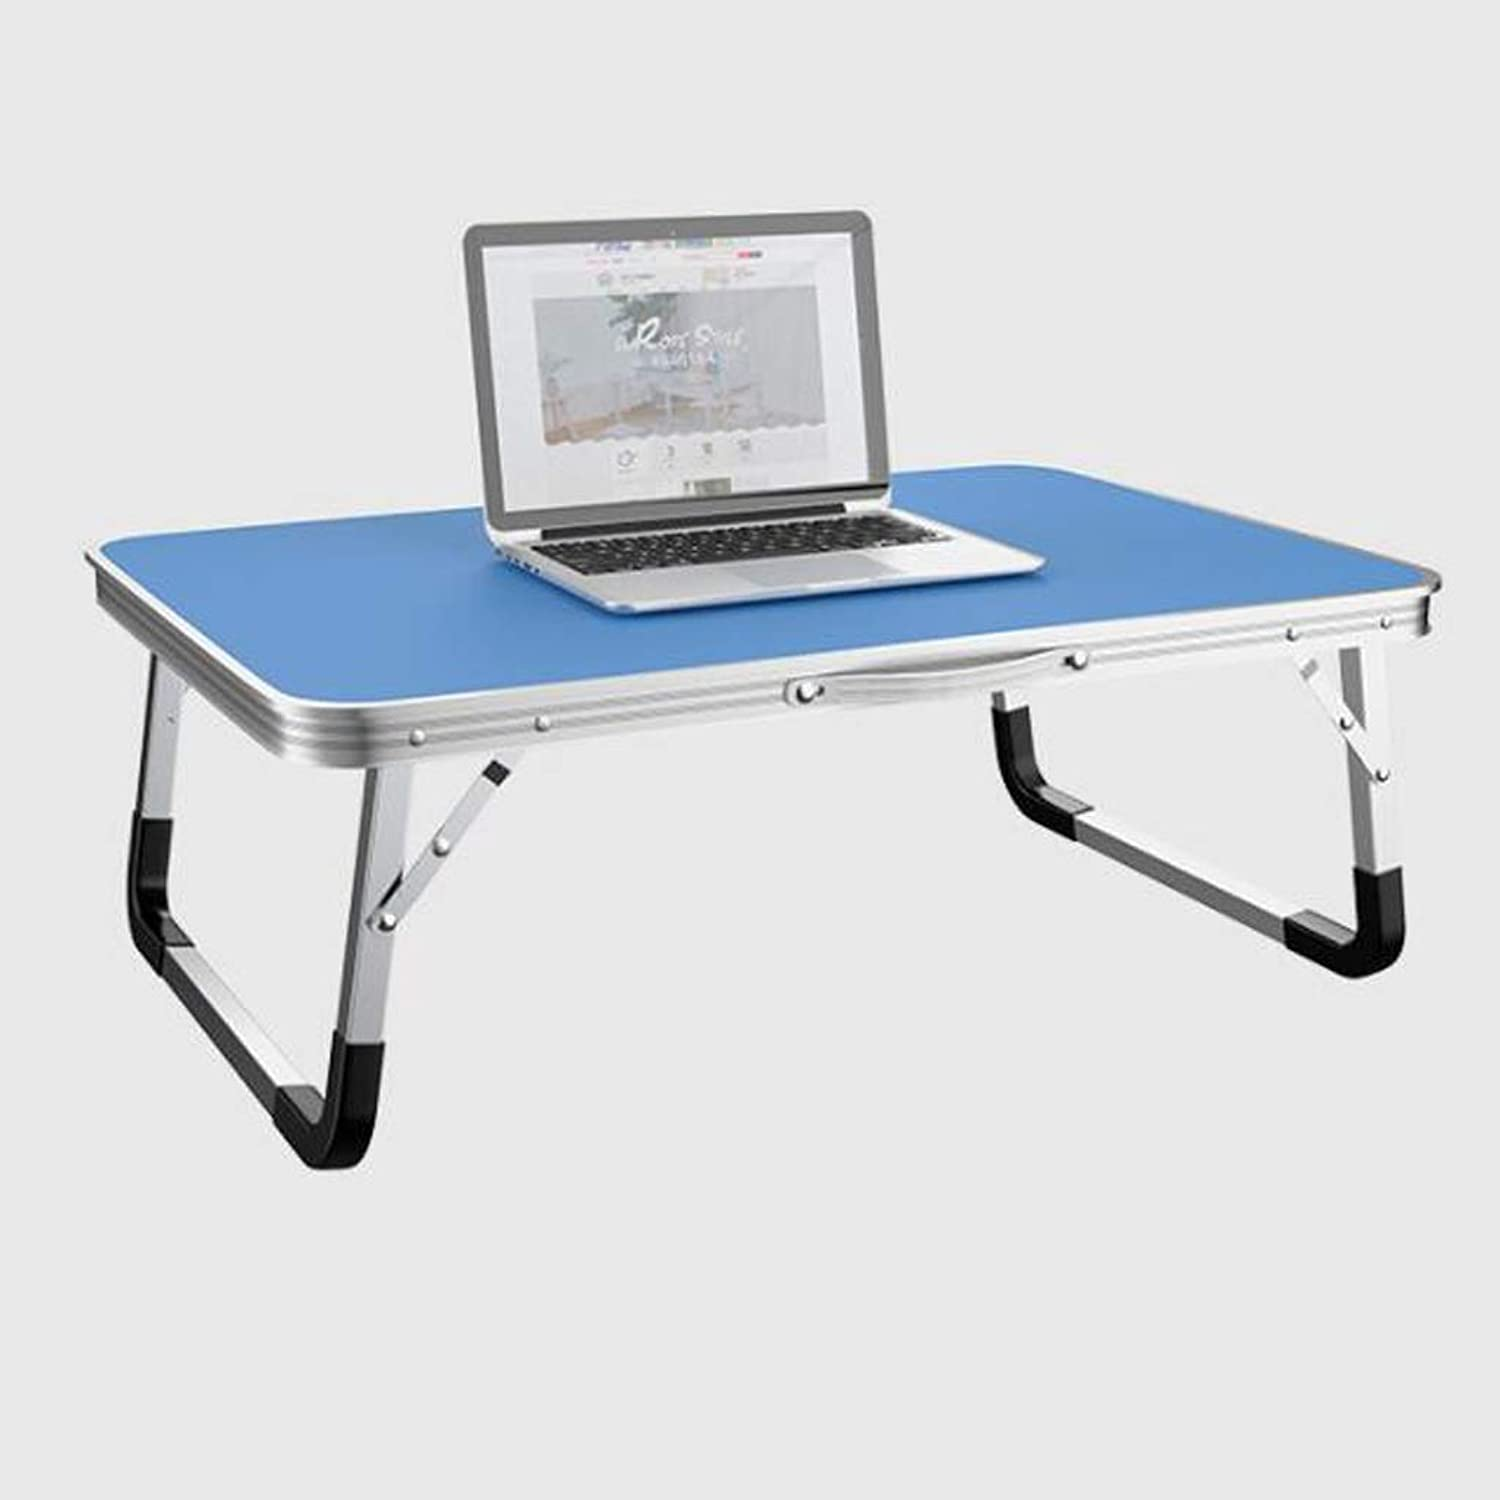 HBJP Folding Table On Bed - Lazy Computer Table - Student Simple Writing Desk - Small Dining Table, Large Desktop, 70  50cm Folding Table (color   bluee)